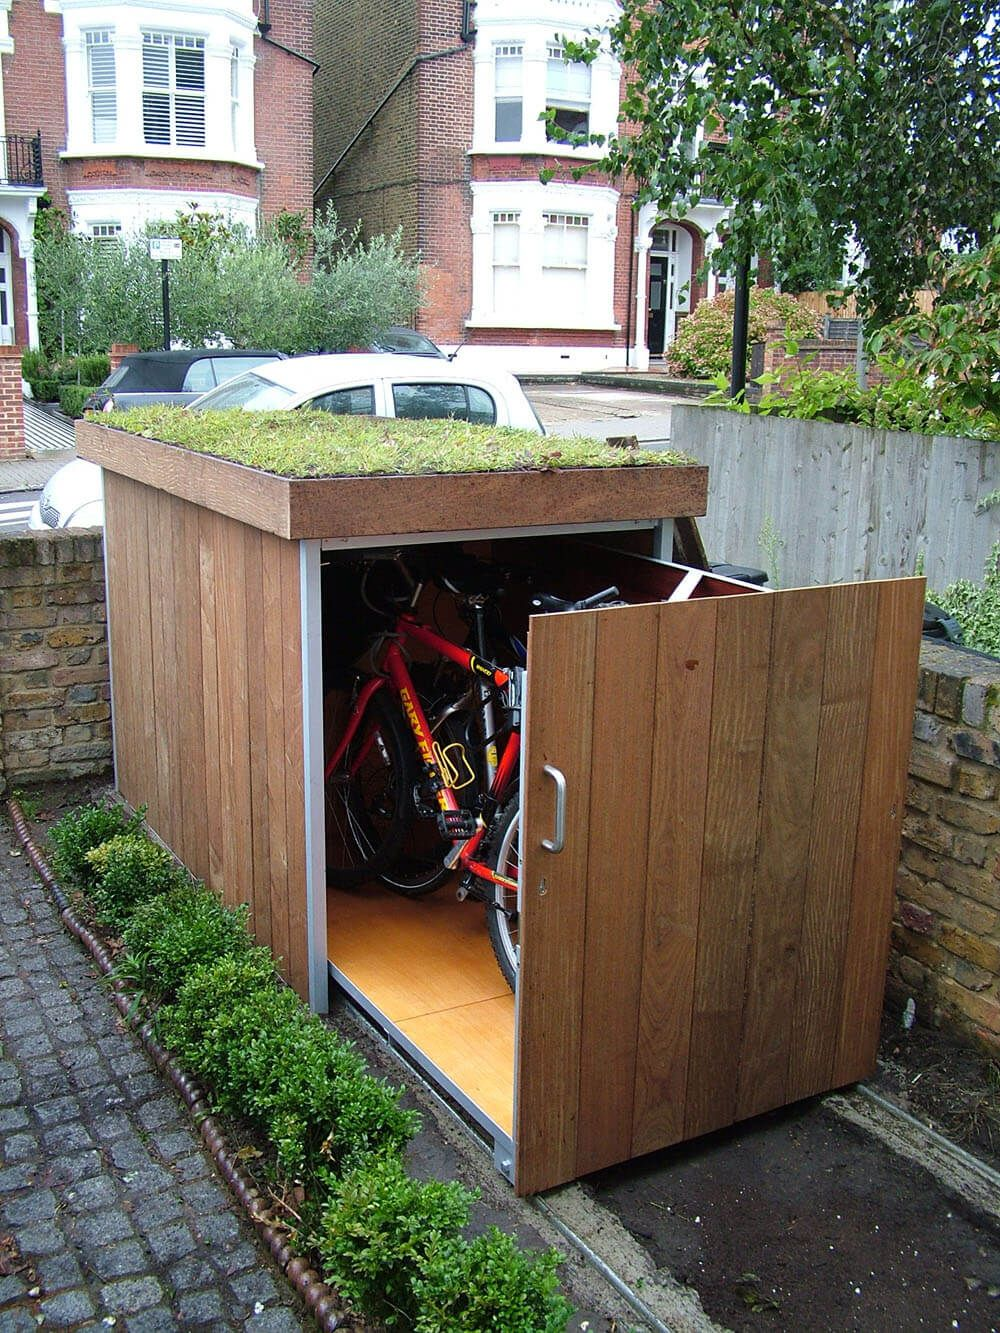 Upgrading bike storage possibilities modern outdoor bike garage https freshome